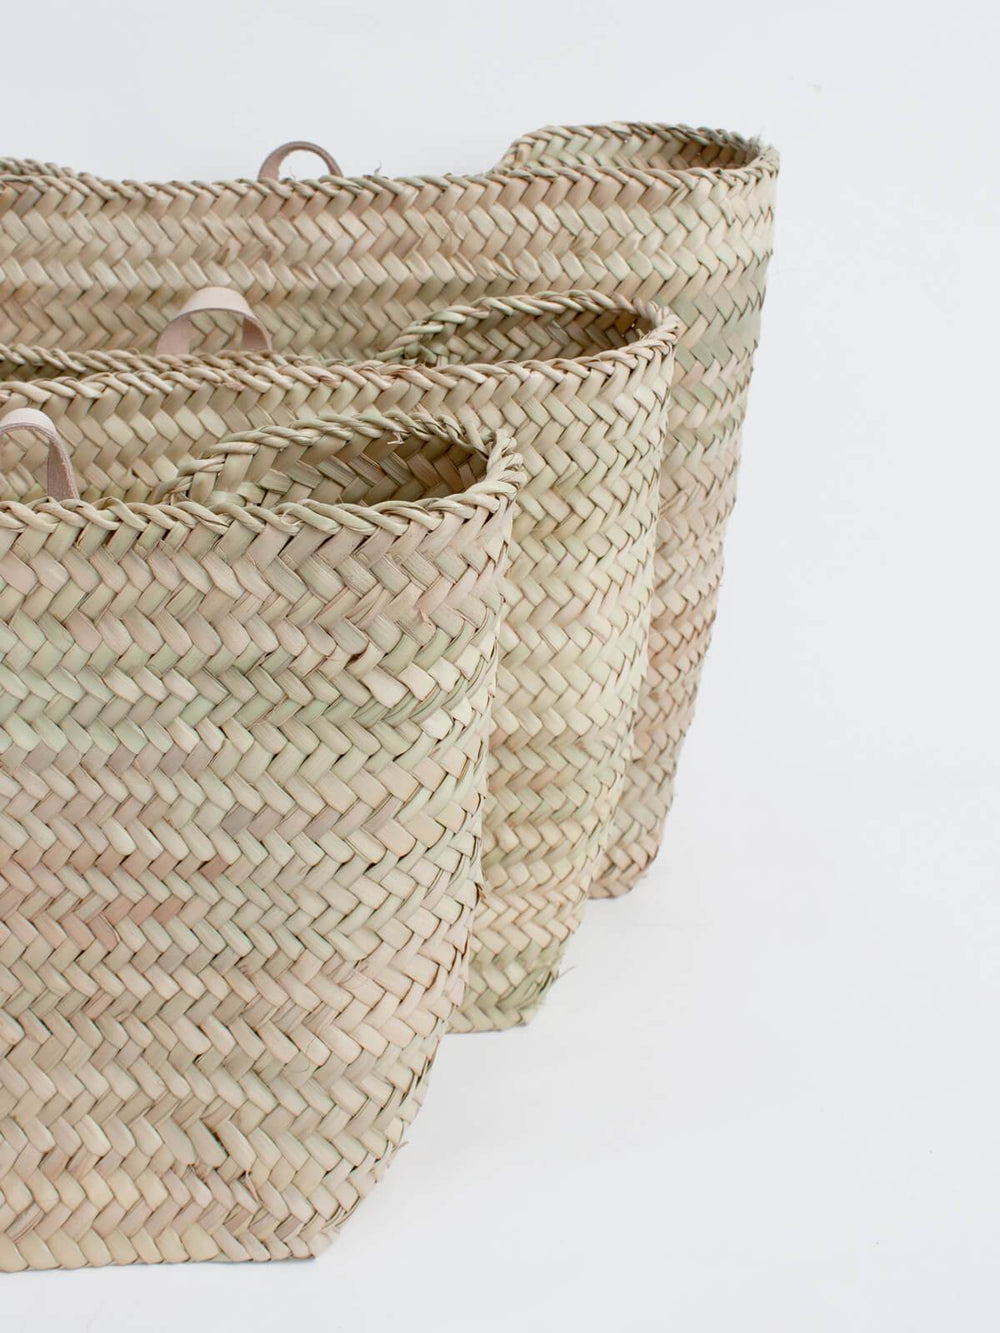 Our Moroccan hanging wall basket is handwoven from palm leaf and finished with a natural leather loop as the perfect indoor planter or storage solution.